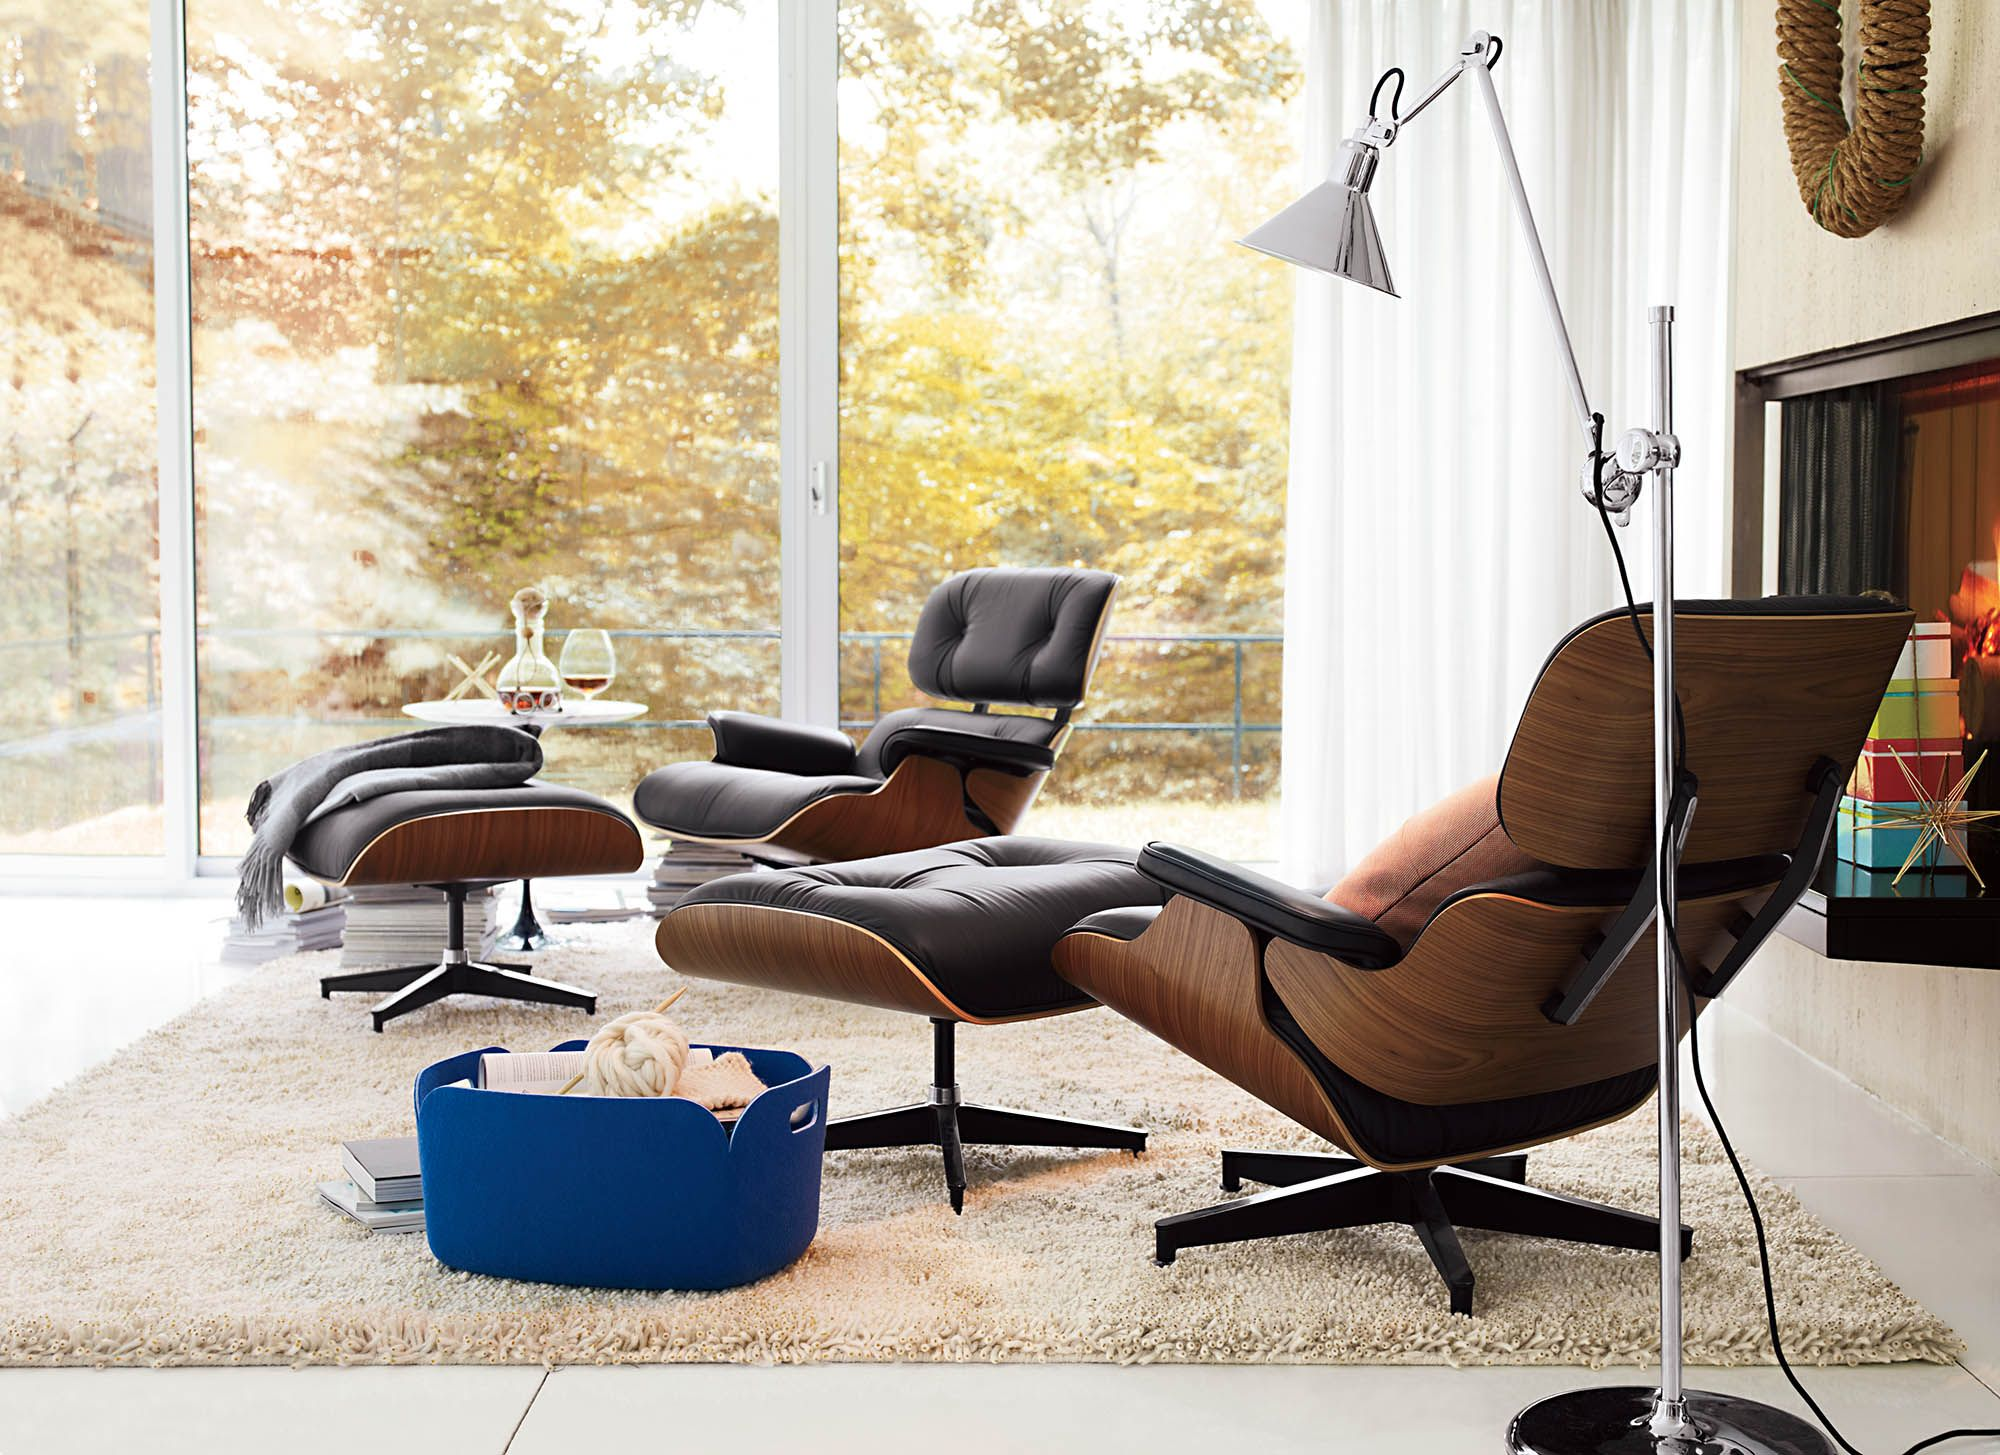 Restore Basket, Medium Eames style lounge chair, Eames